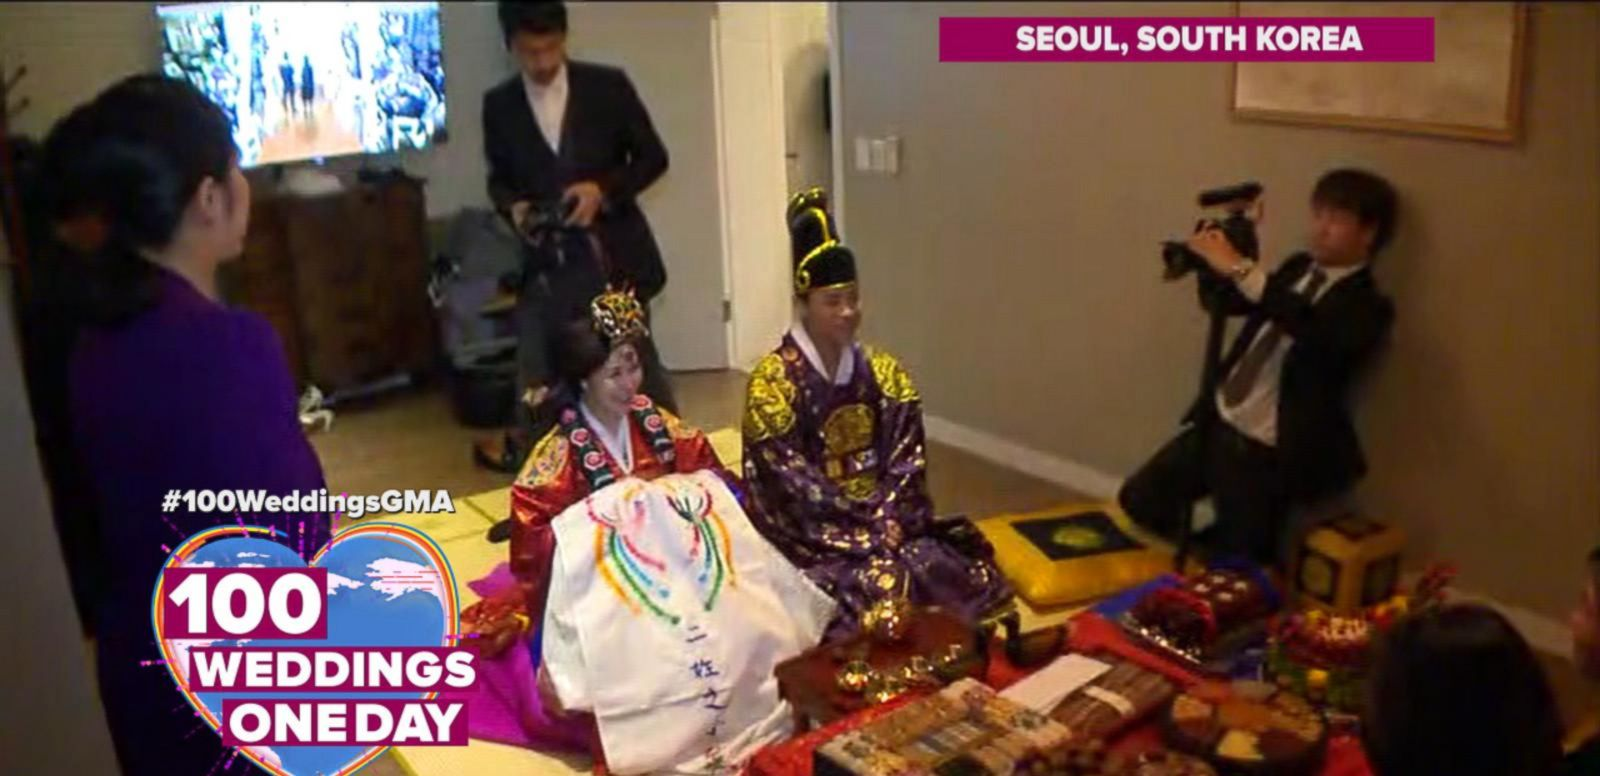 VIDEO: Beautiful South Korean Wedding Ceremony Features Many Family Traditions